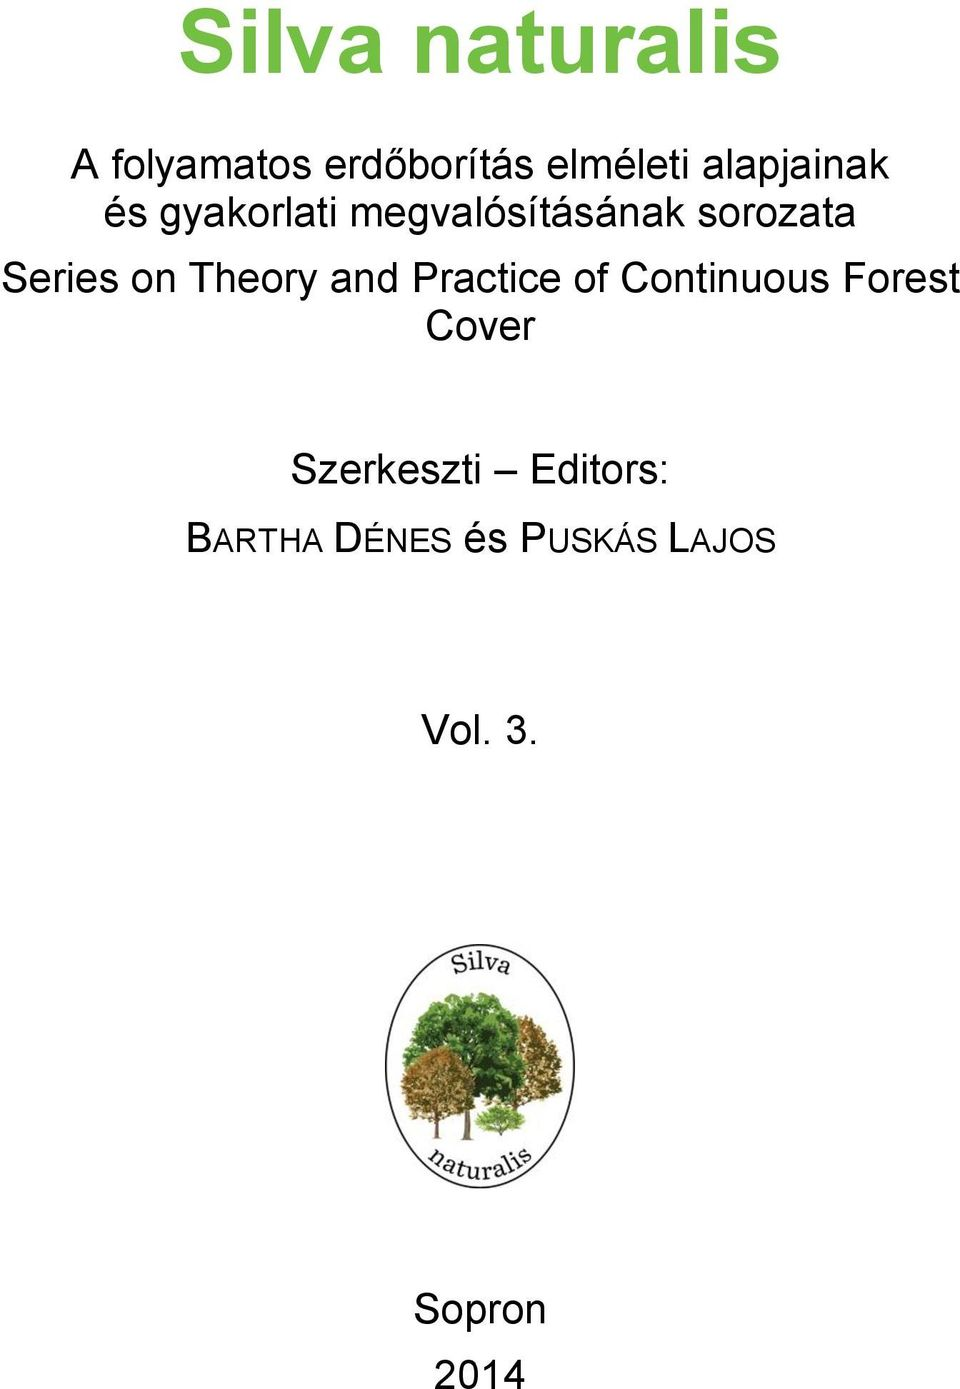 Series on Theory and Practice of Continuous Forest Cover